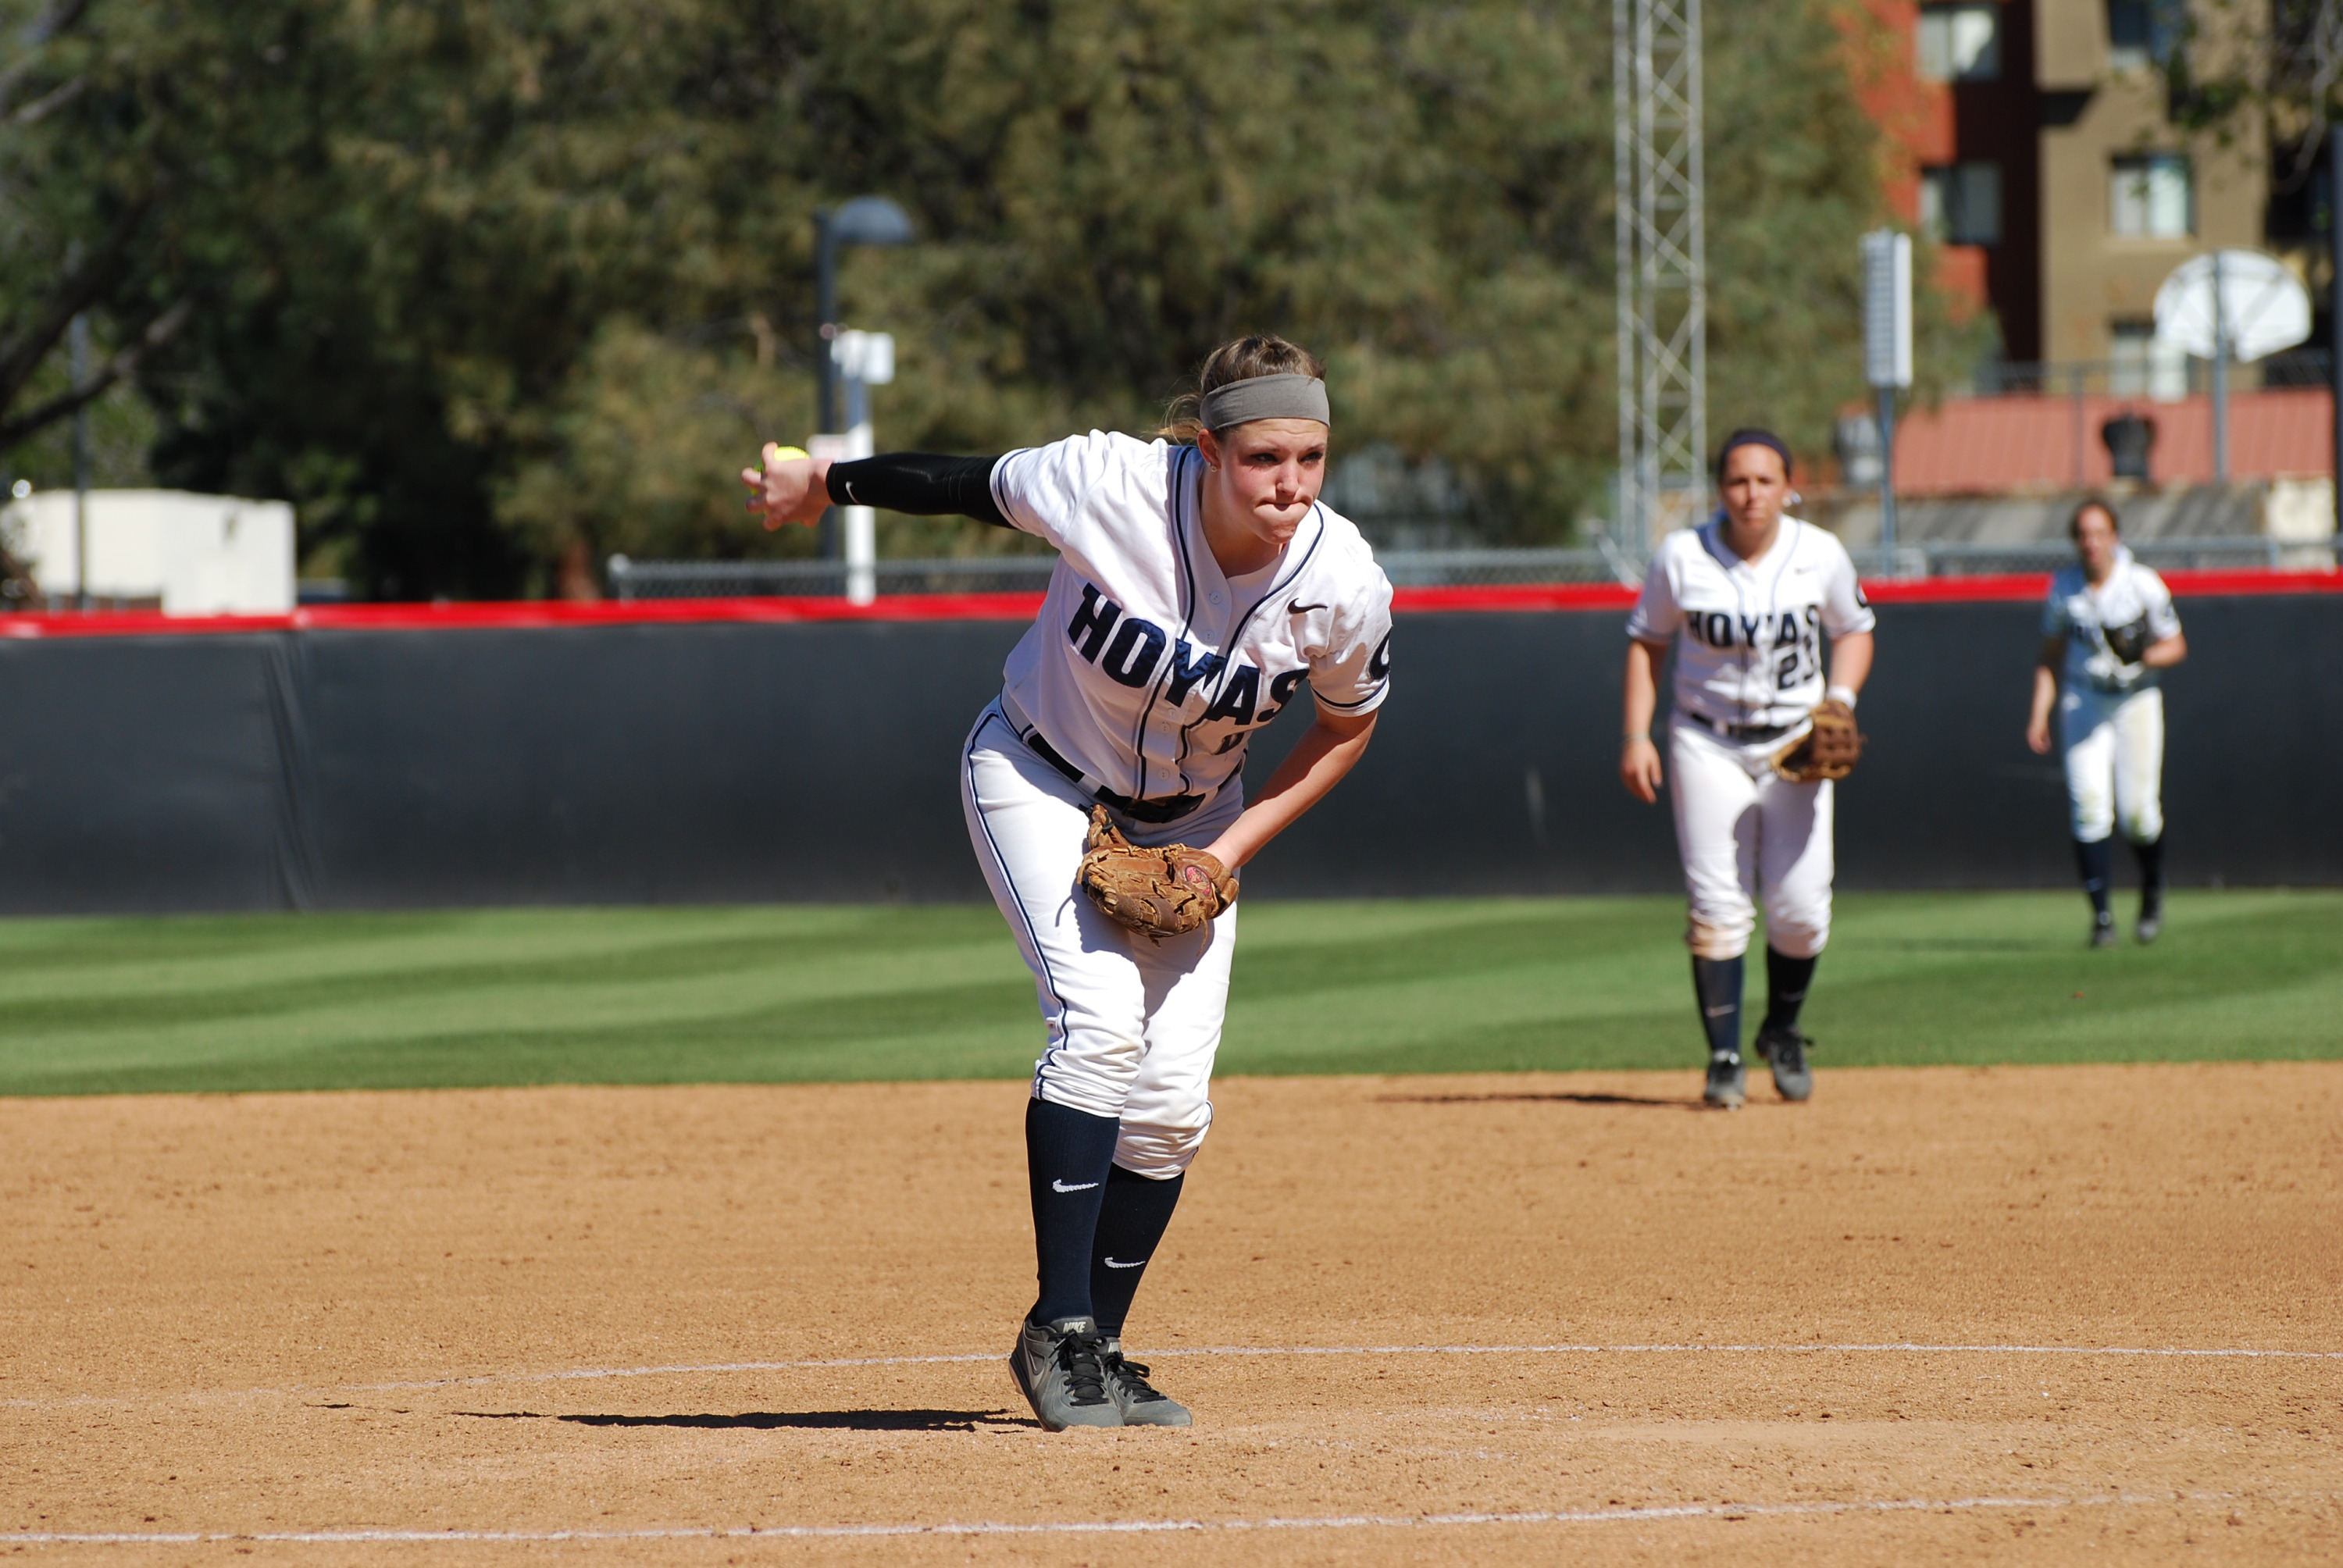 <b> Senior pitcher Megan Hyson leads the Hoyas in batting average after four games, sitting at .500 with six hits.<b>